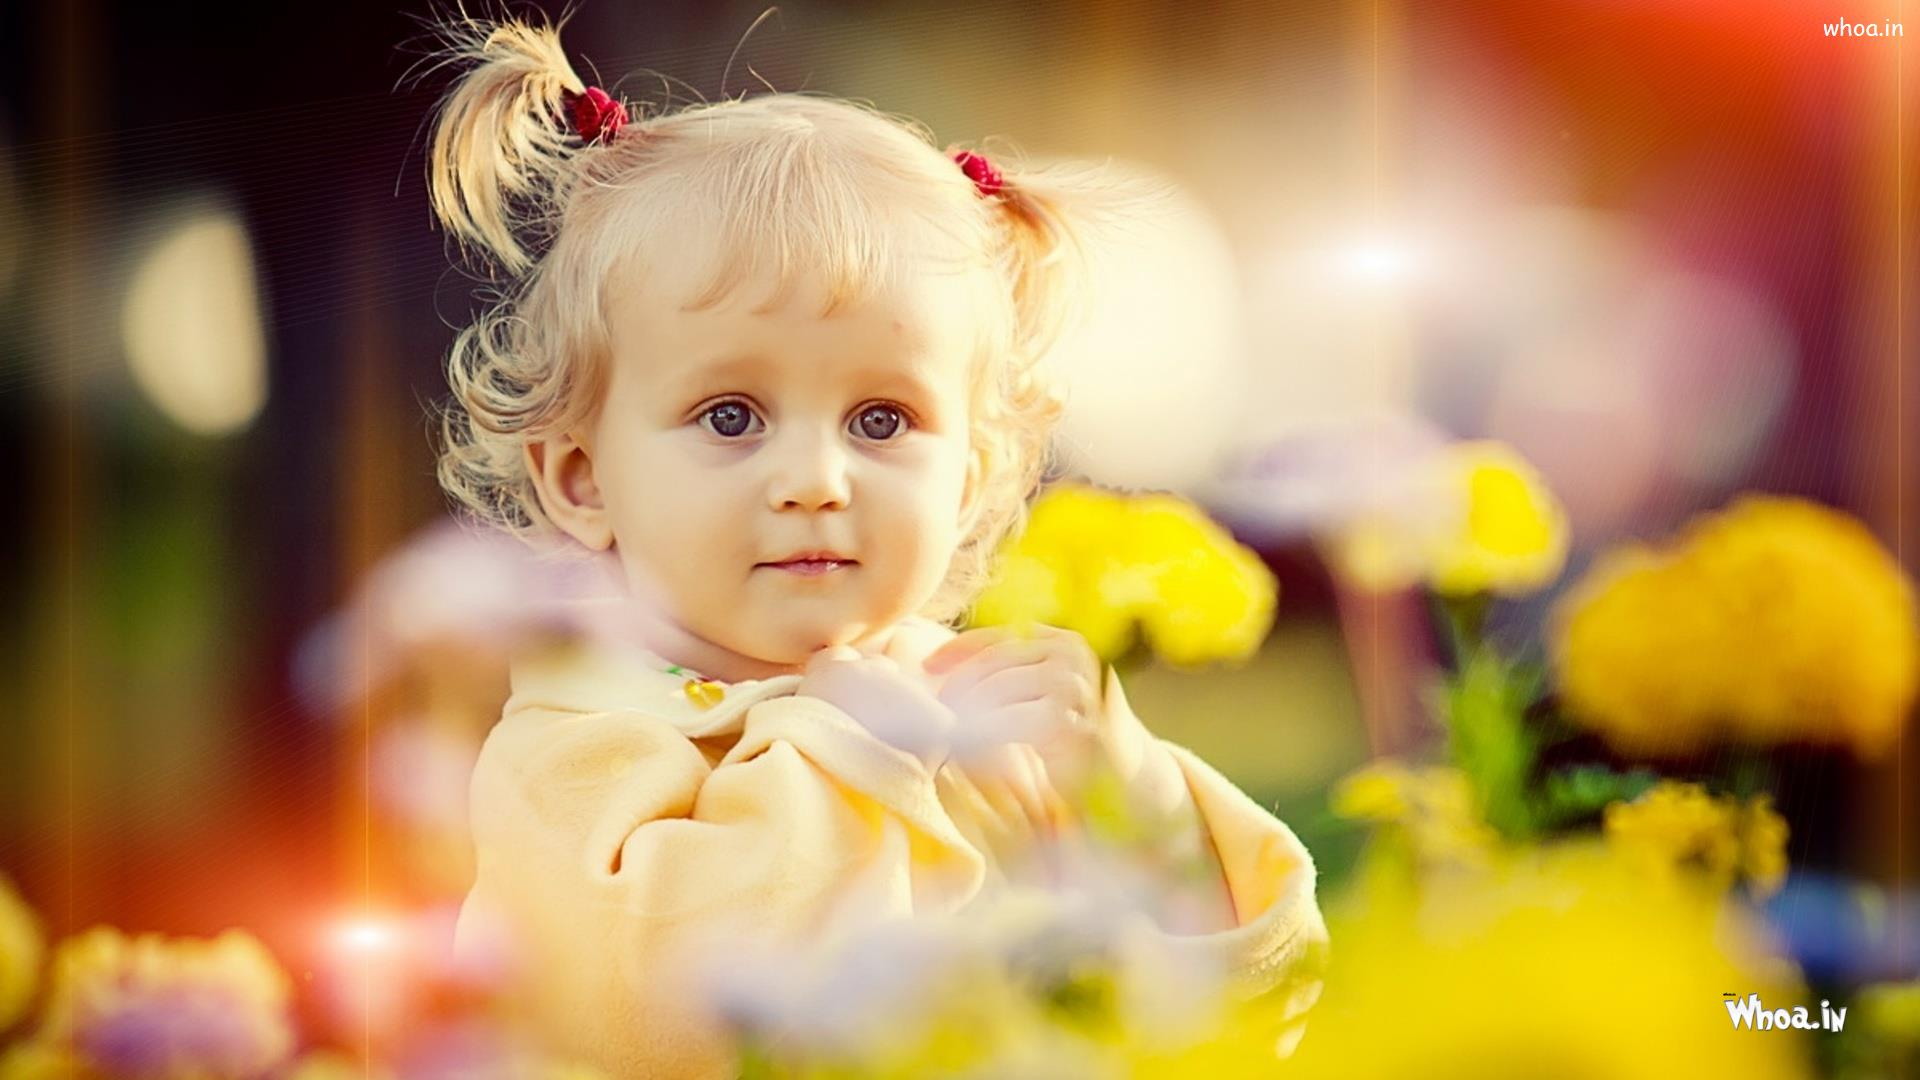 Black eyes baby little girl hair style hd babies wallpaper download thecheapjerseys Image collections